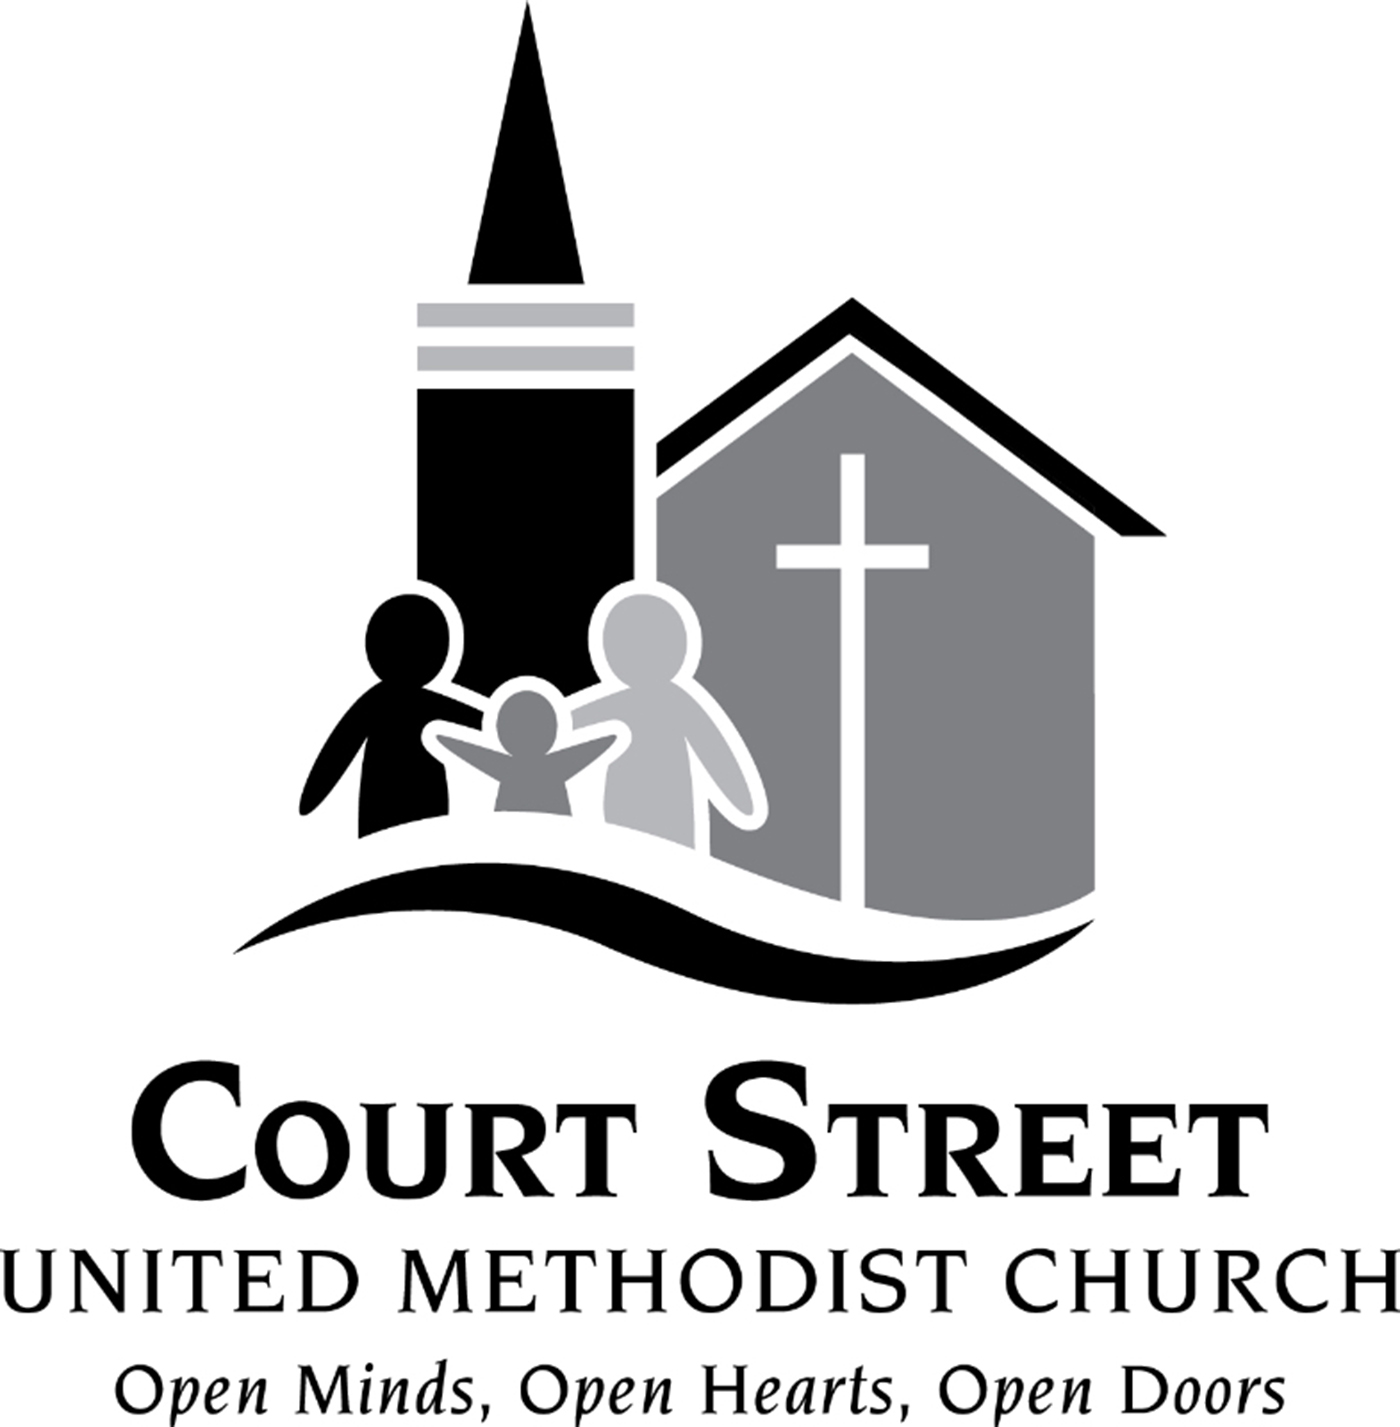 WORSHIP & SERMONS - Court Street United Methodist Church